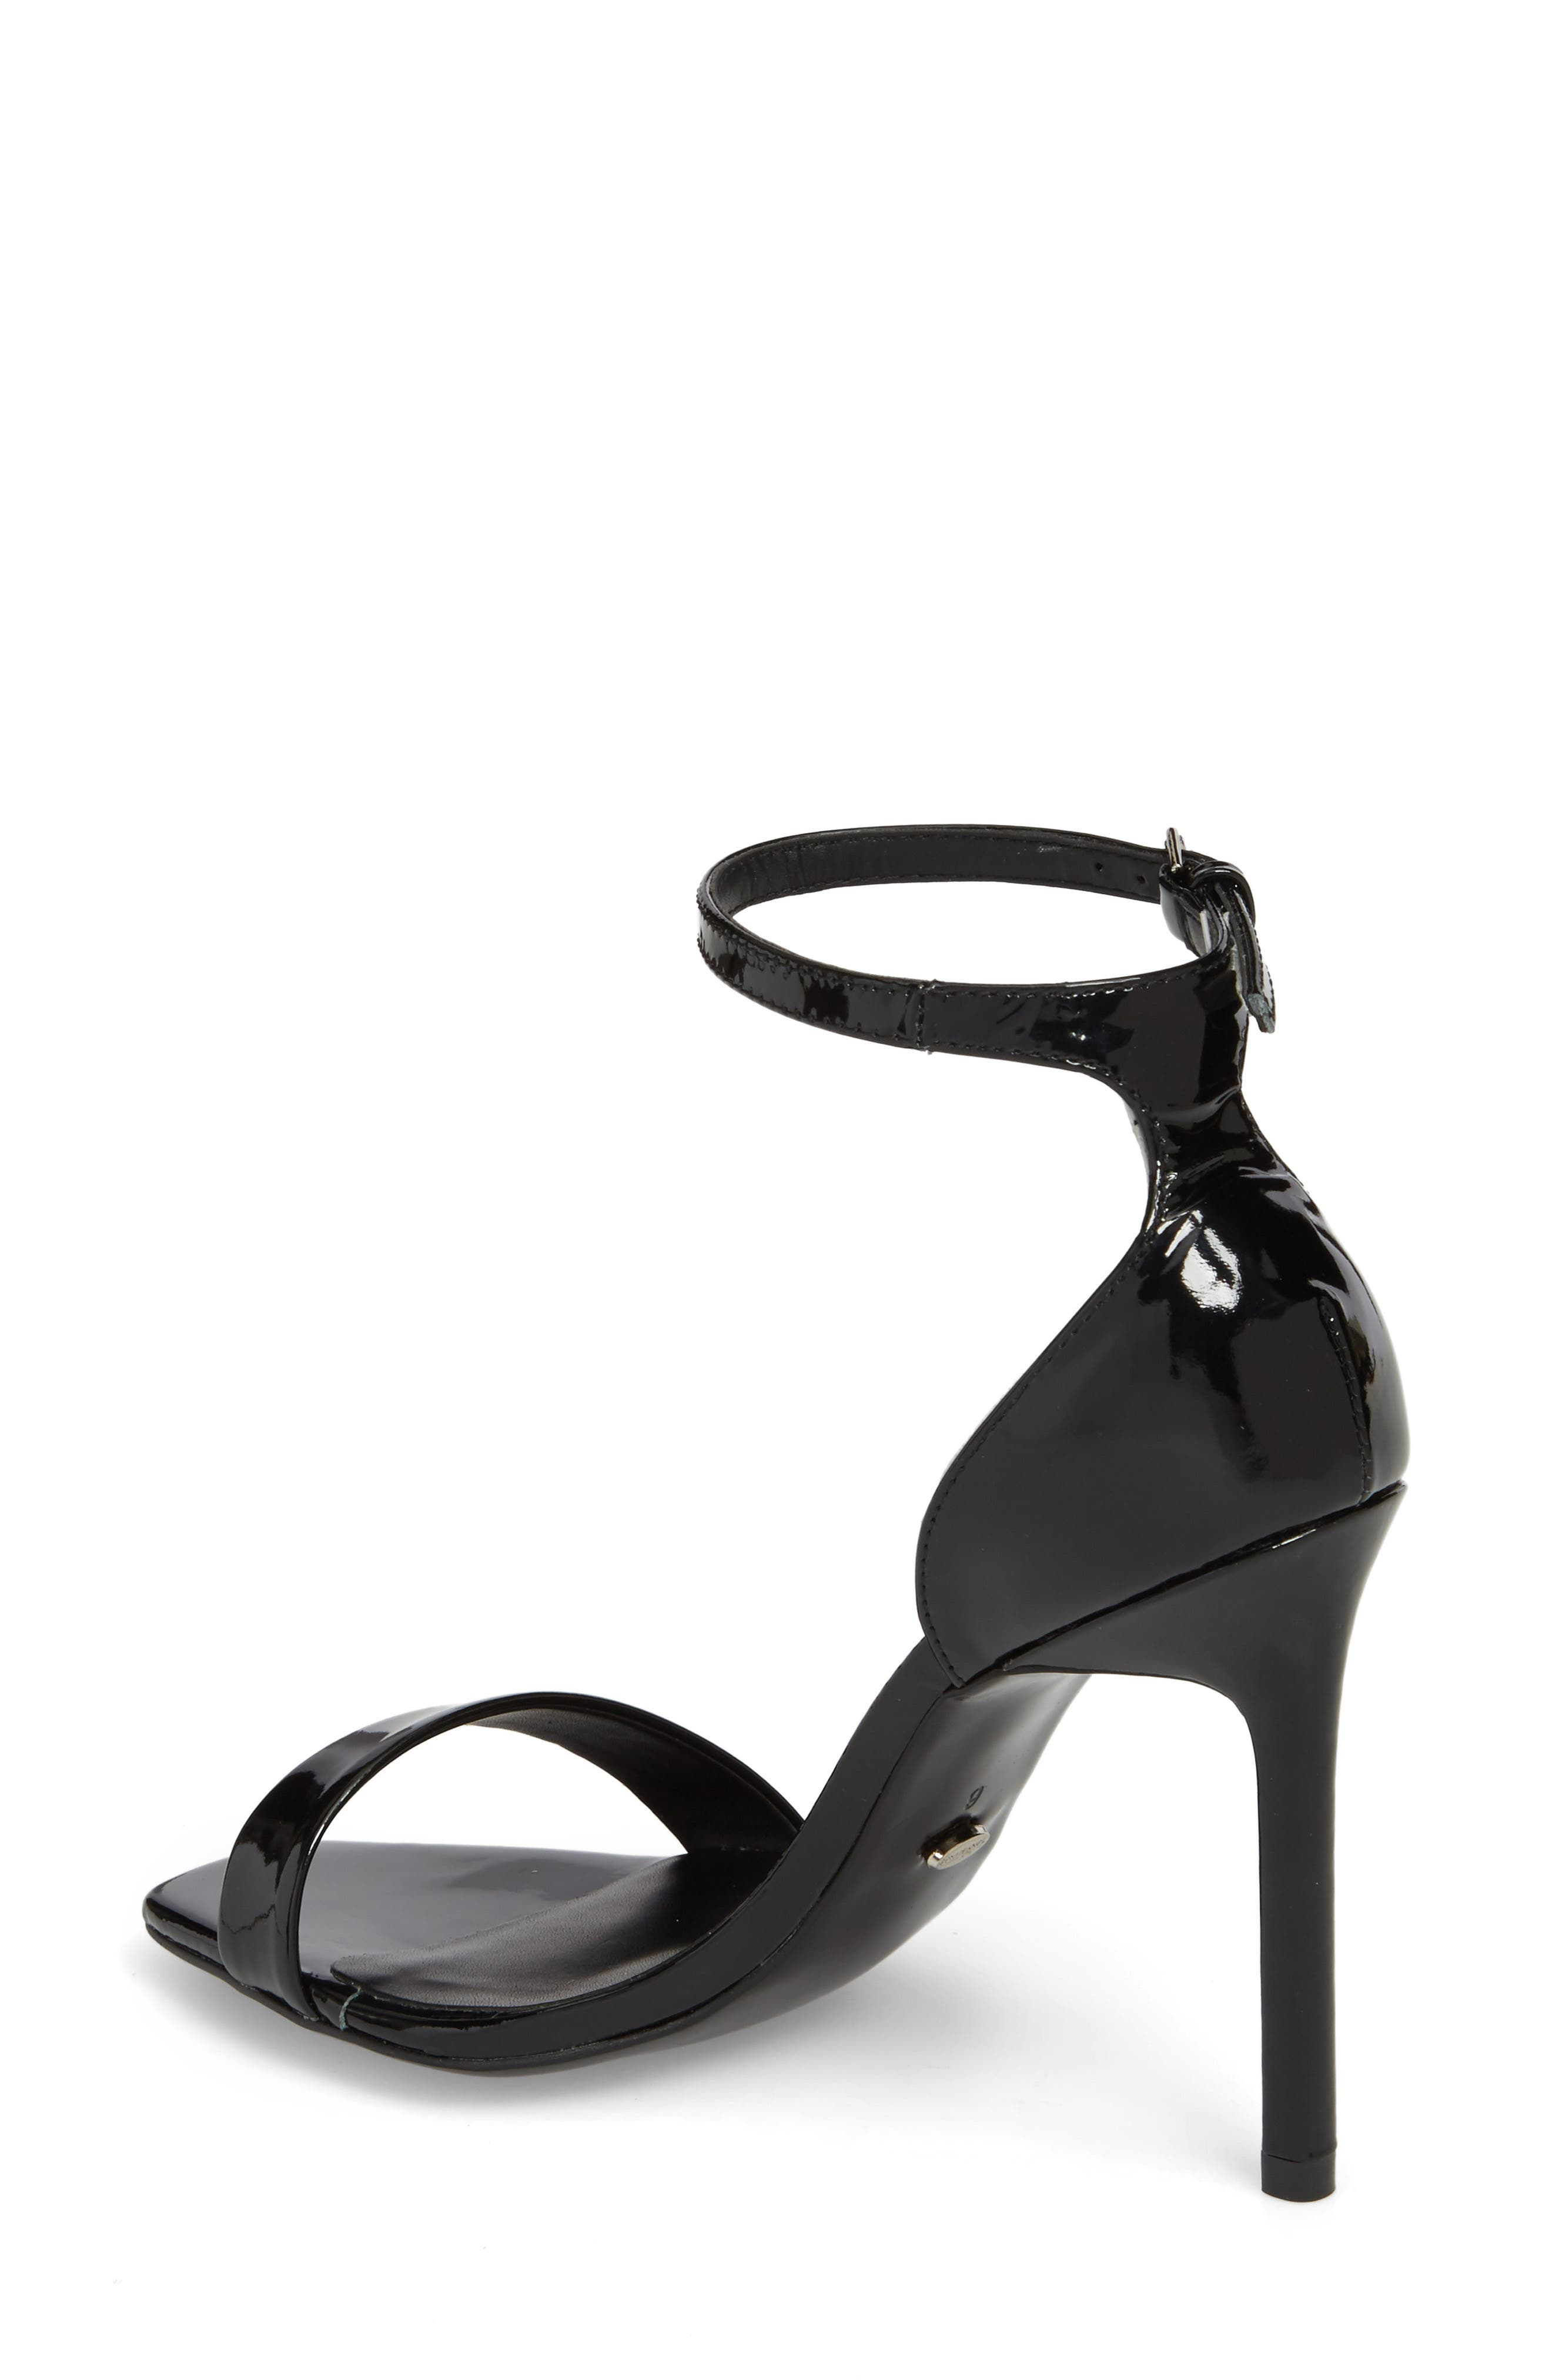 Communication on this topic: Womens Tony Bianco Selena Sandal, Size 7 , womens-tony-bianco-selena-sandal-size-7/